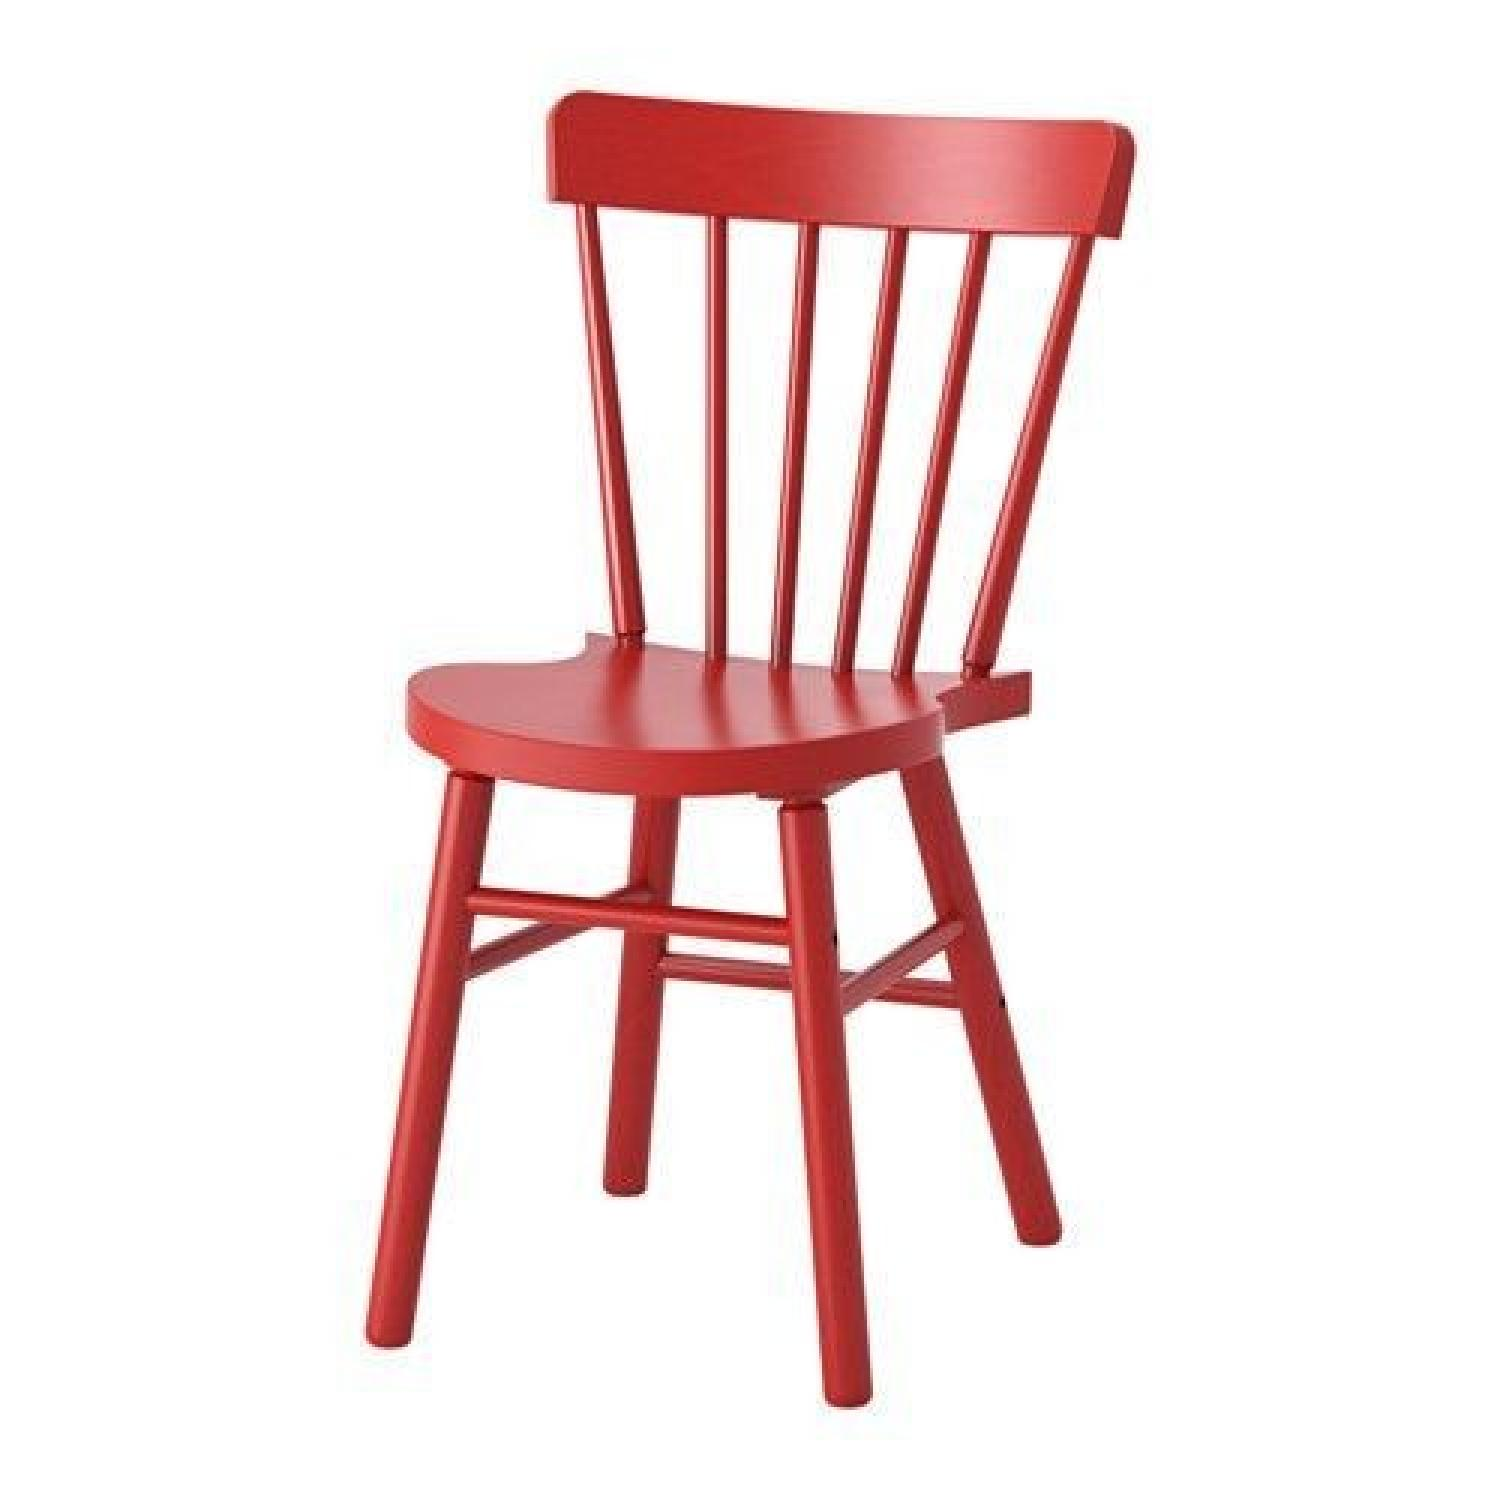 Ikea Norraryd Red Dining Chair